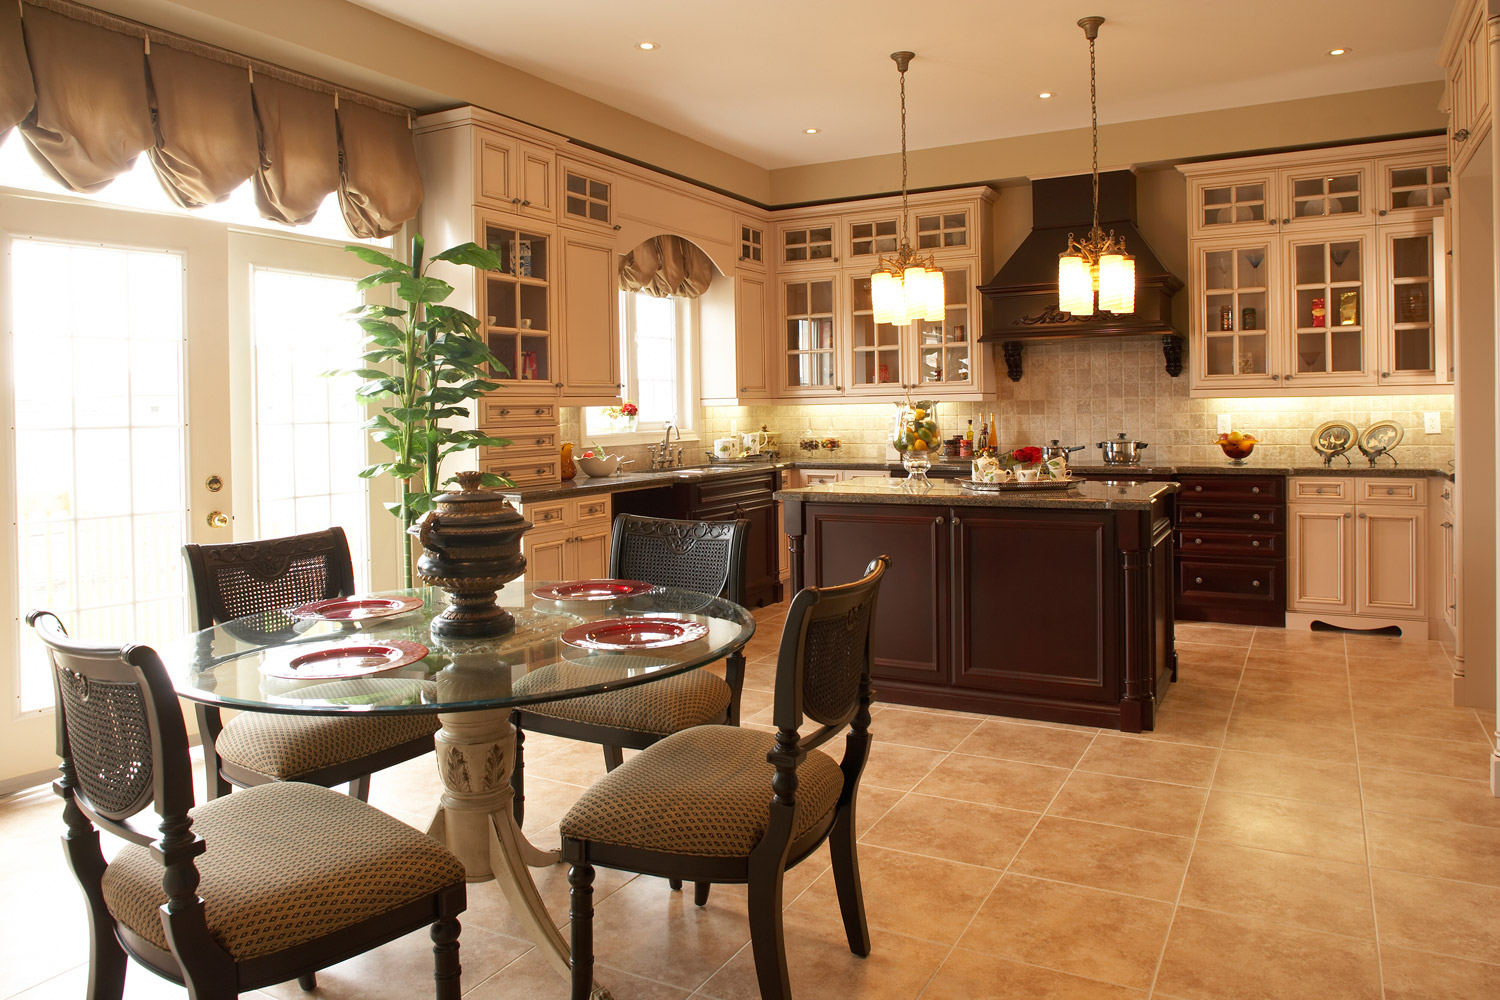 Model homes 28 images model home kitchen decor winda 7 furniture decorated model homes - Who decorates model homes image ...